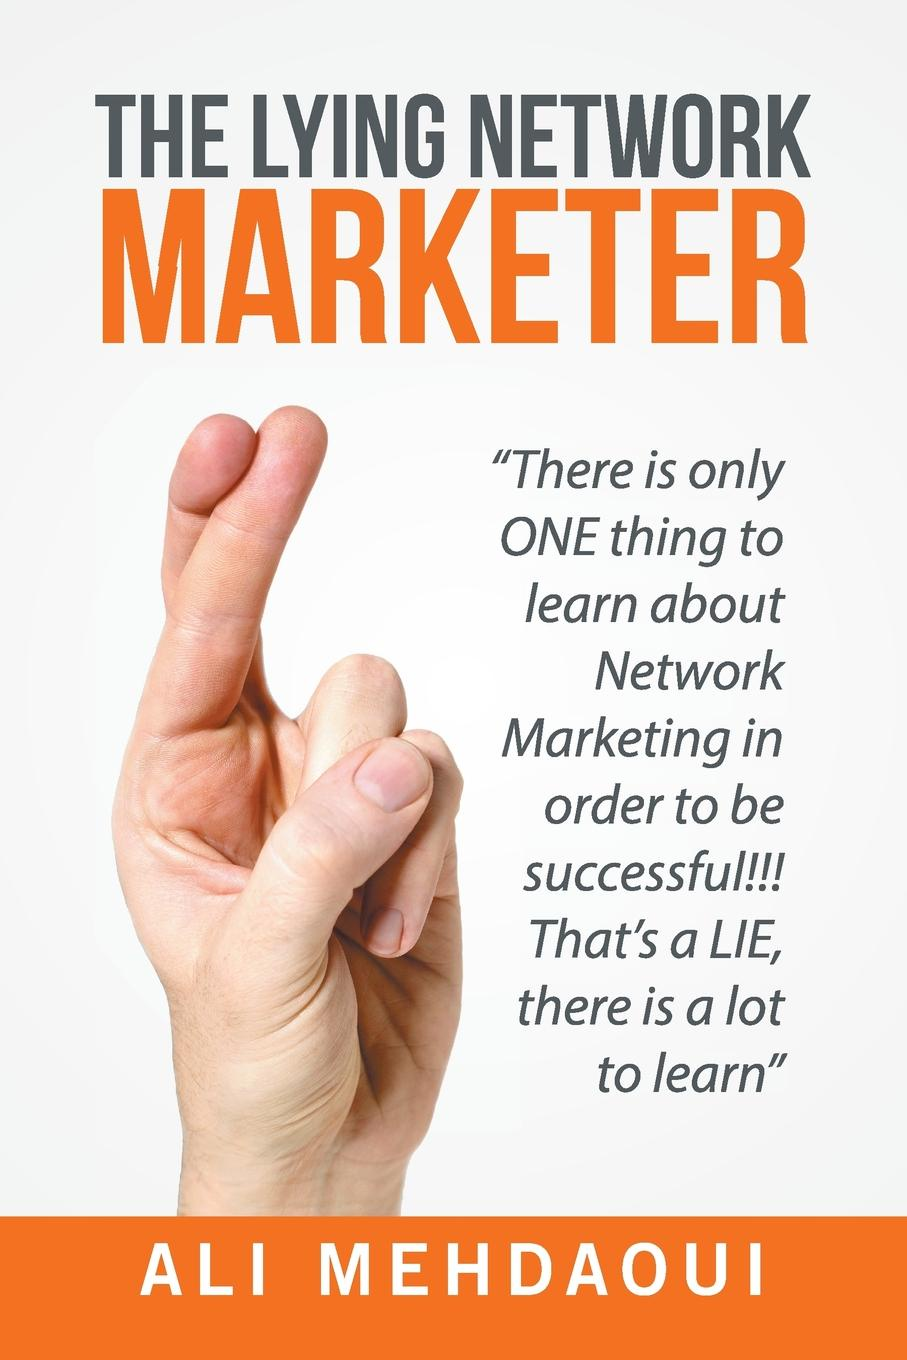 Ali Mehdaoui The Lying Network Marketer. There Is Only One Thing to Learn About Network Marketing in Order to Be Successful!!! That's a Lie, There Is a Lot to Learn gunnar schuster network marketing enrichment or deception